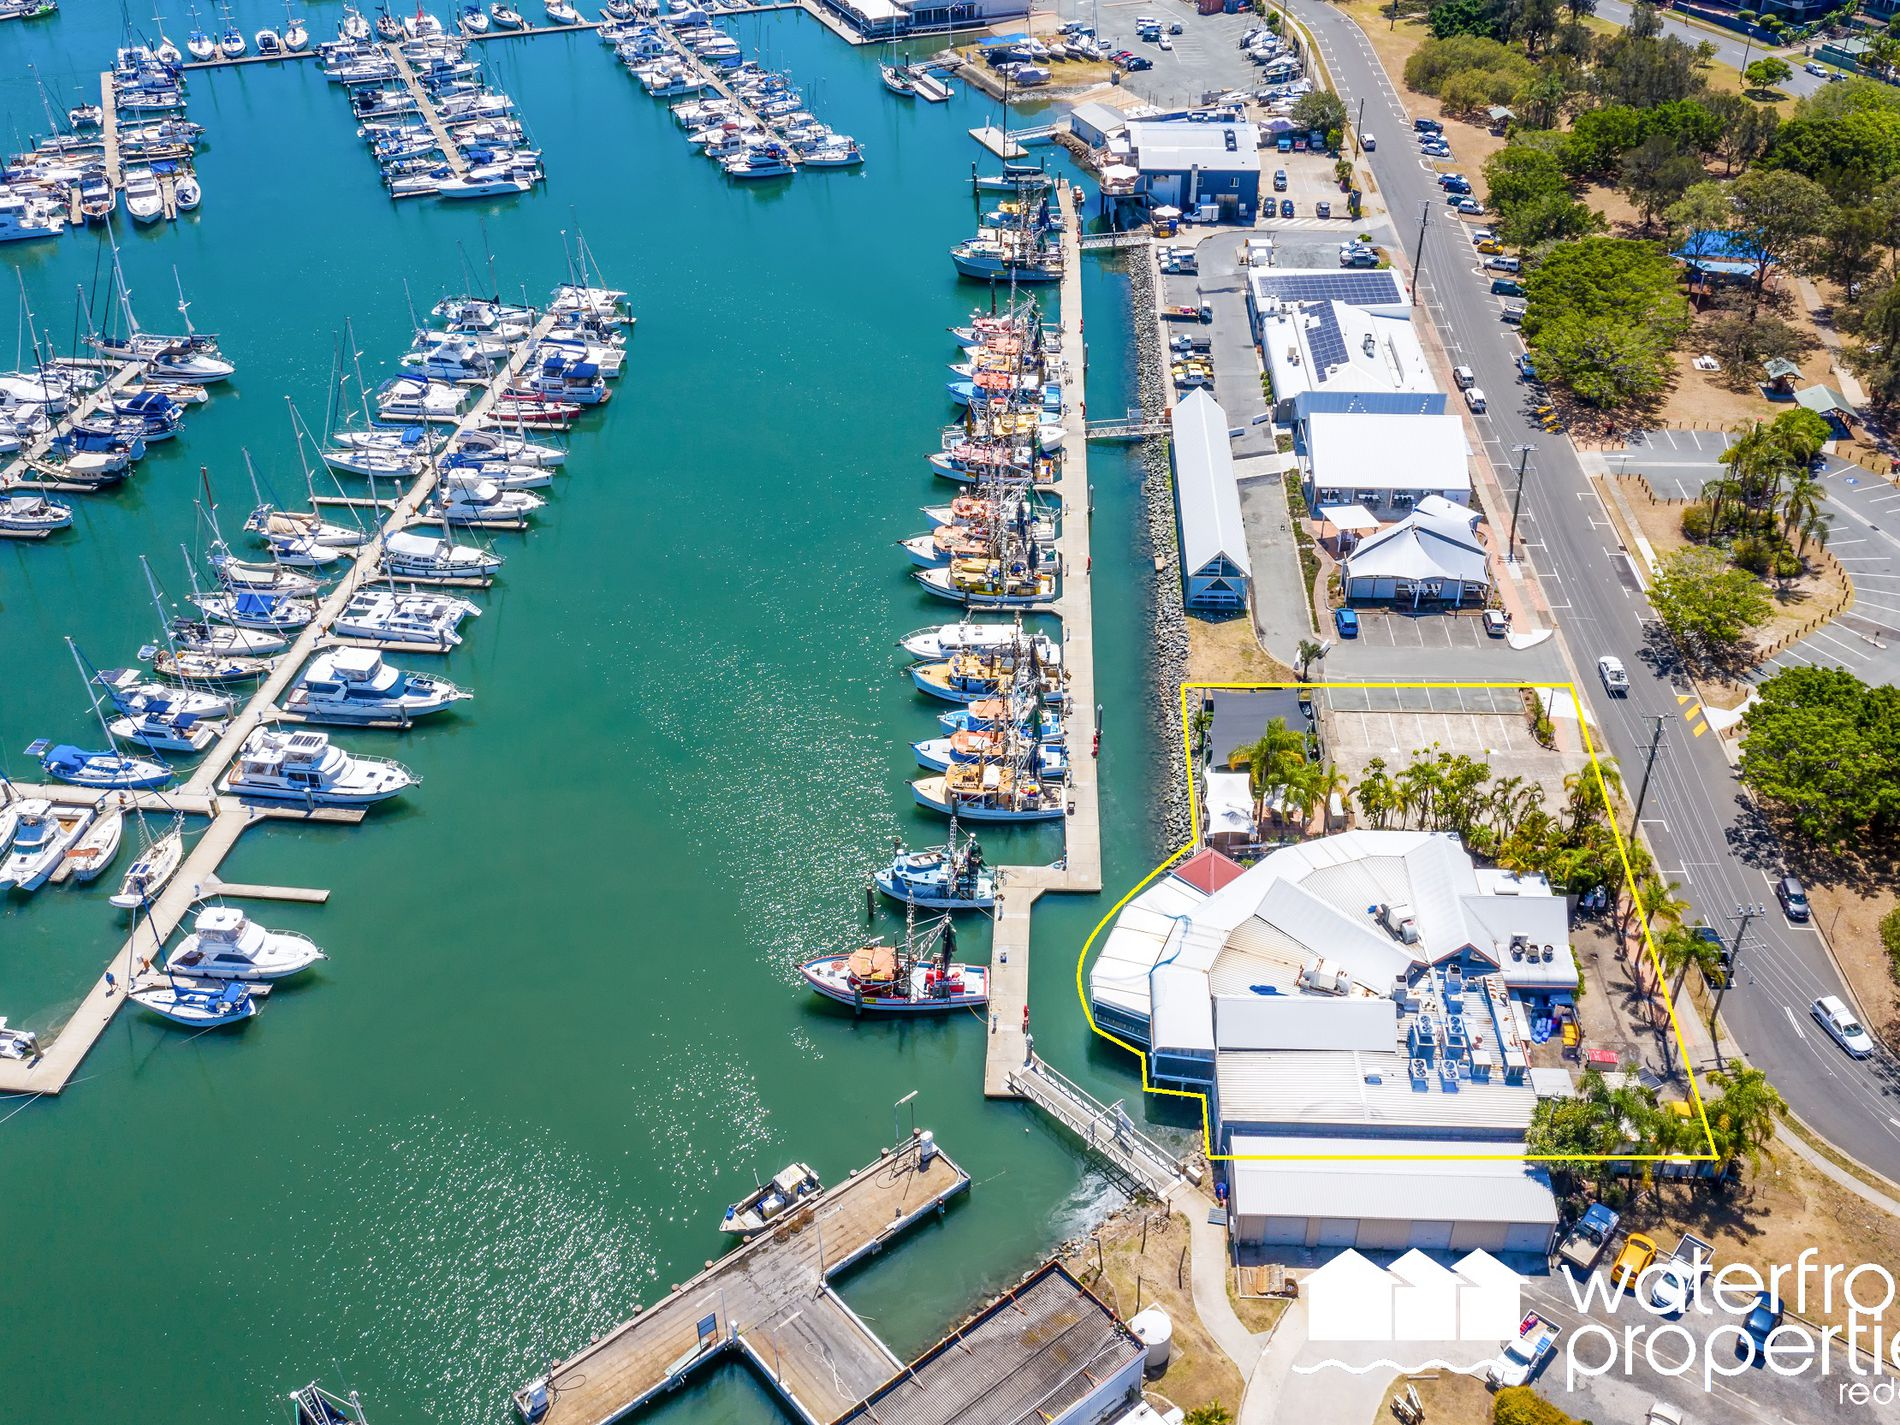 Iconic Seafood Restaurant For SALE - Peninsula Business Opportunity!